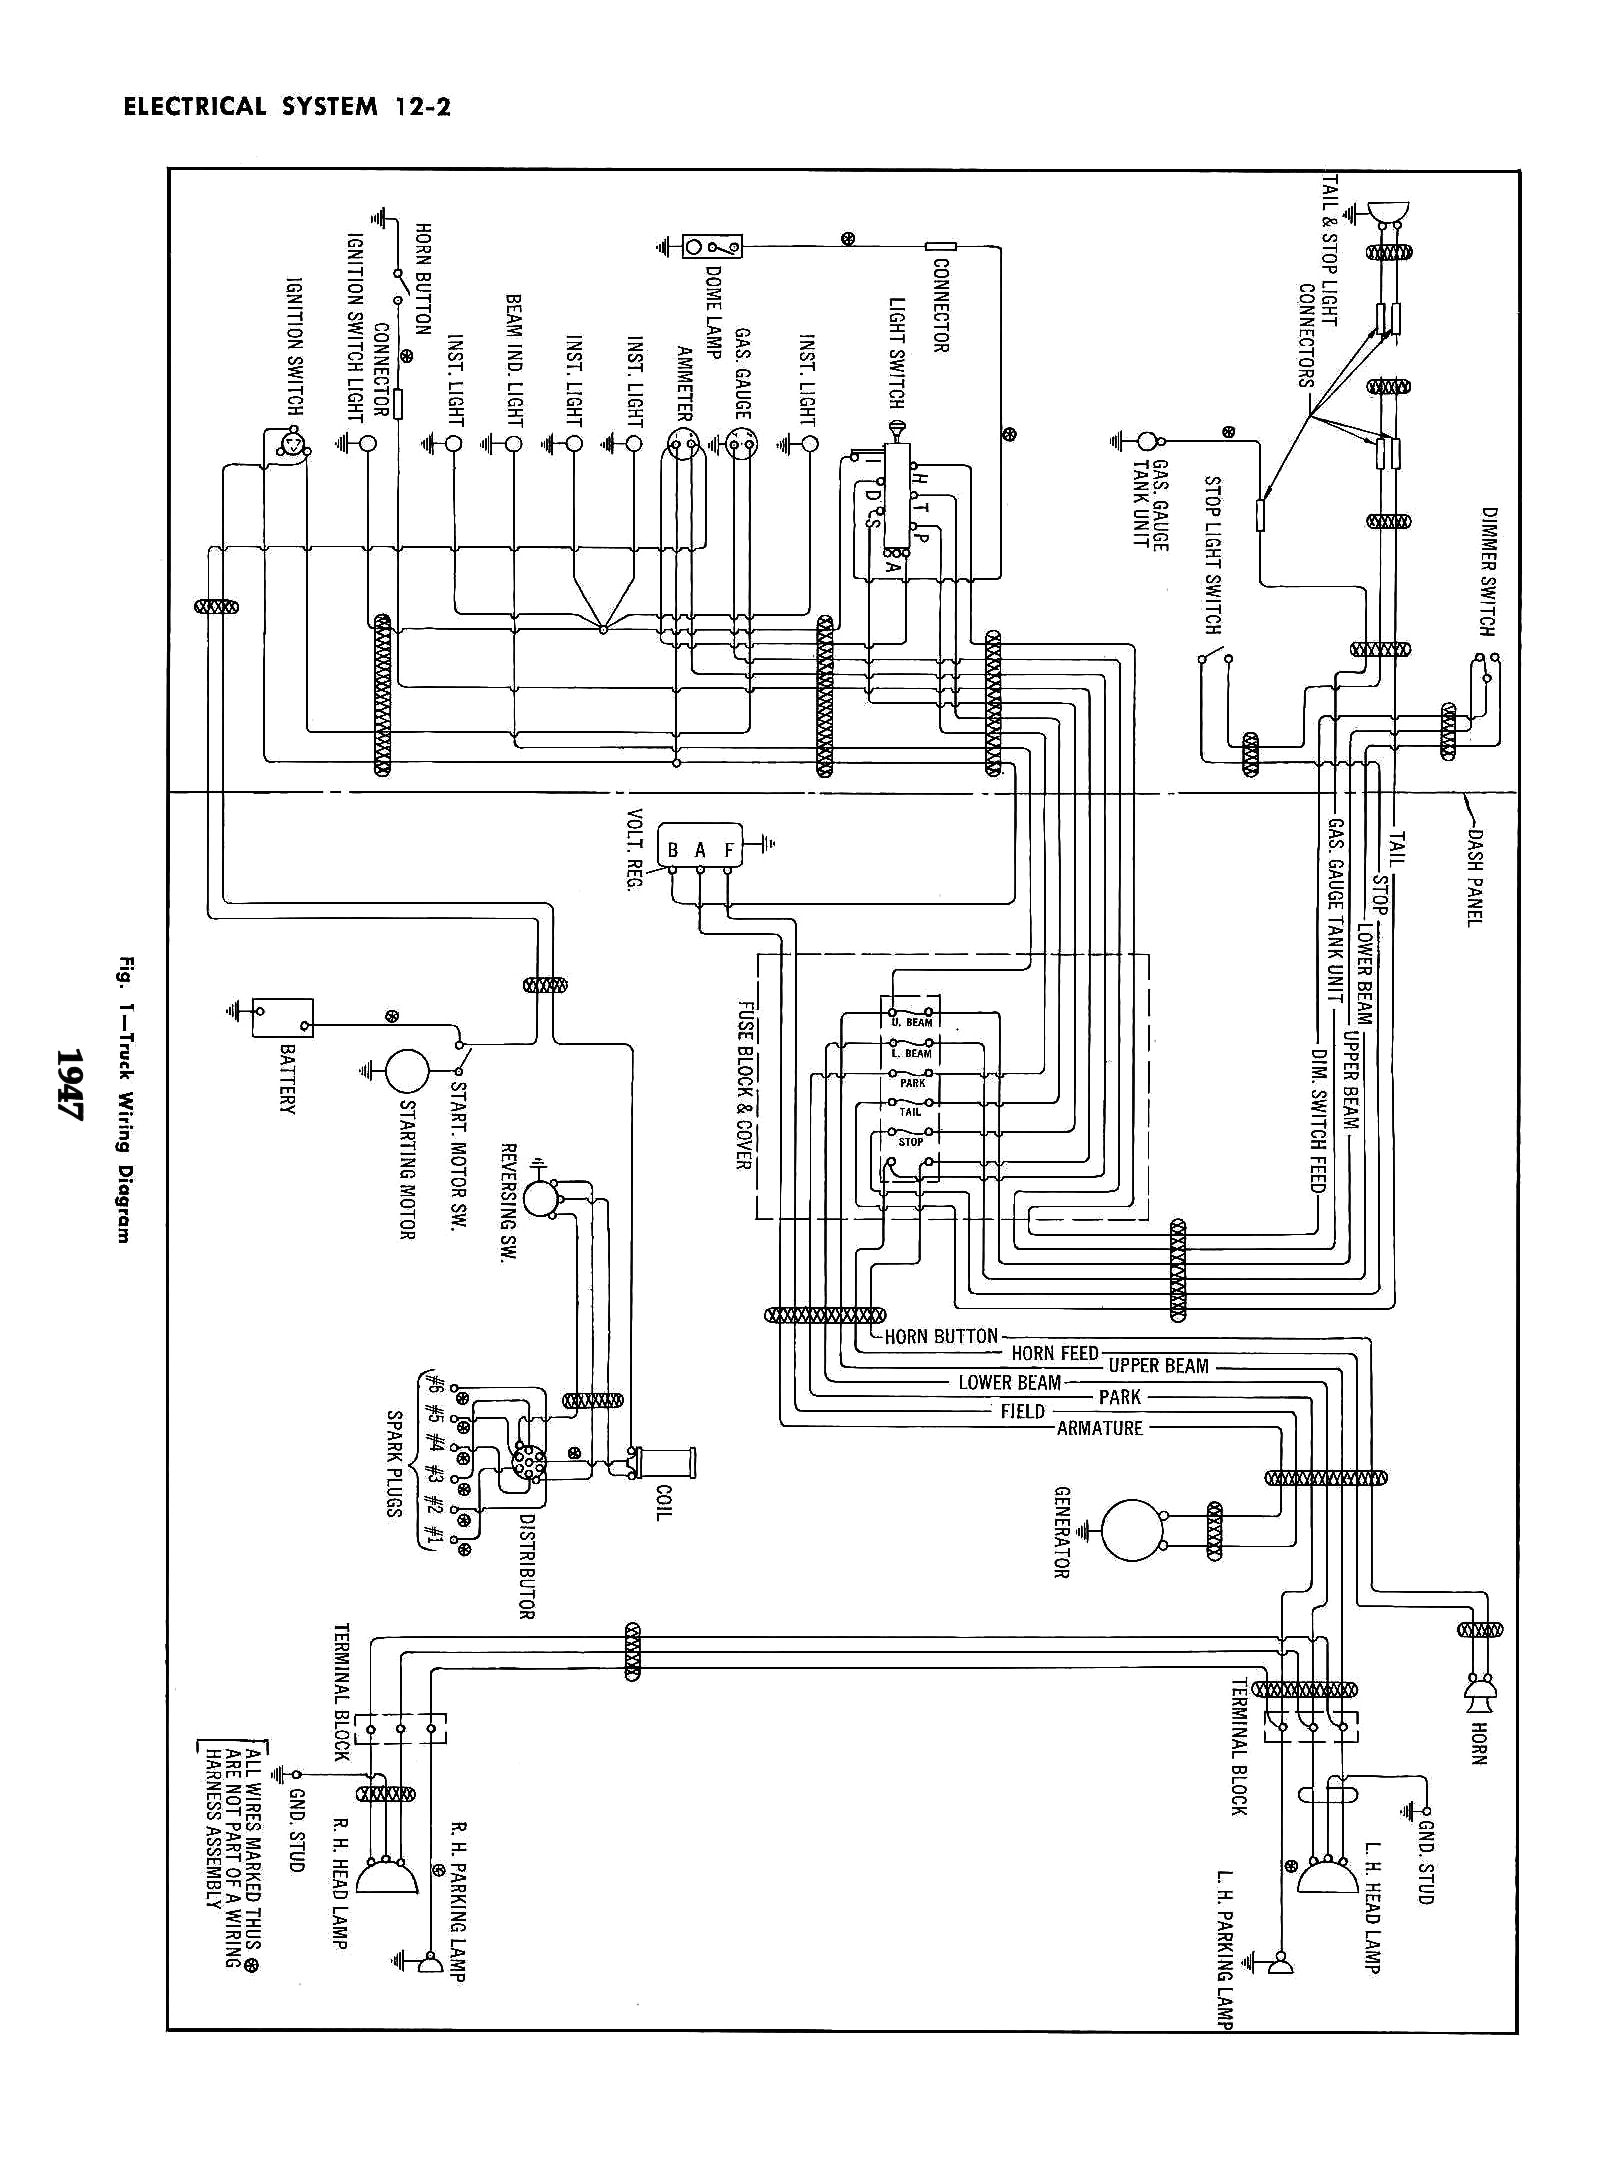 Wiring Diagram For 1953 Chevy Pickup Truck Will Be 86 Diagrams Rh Oldcarmanualproject Com 82